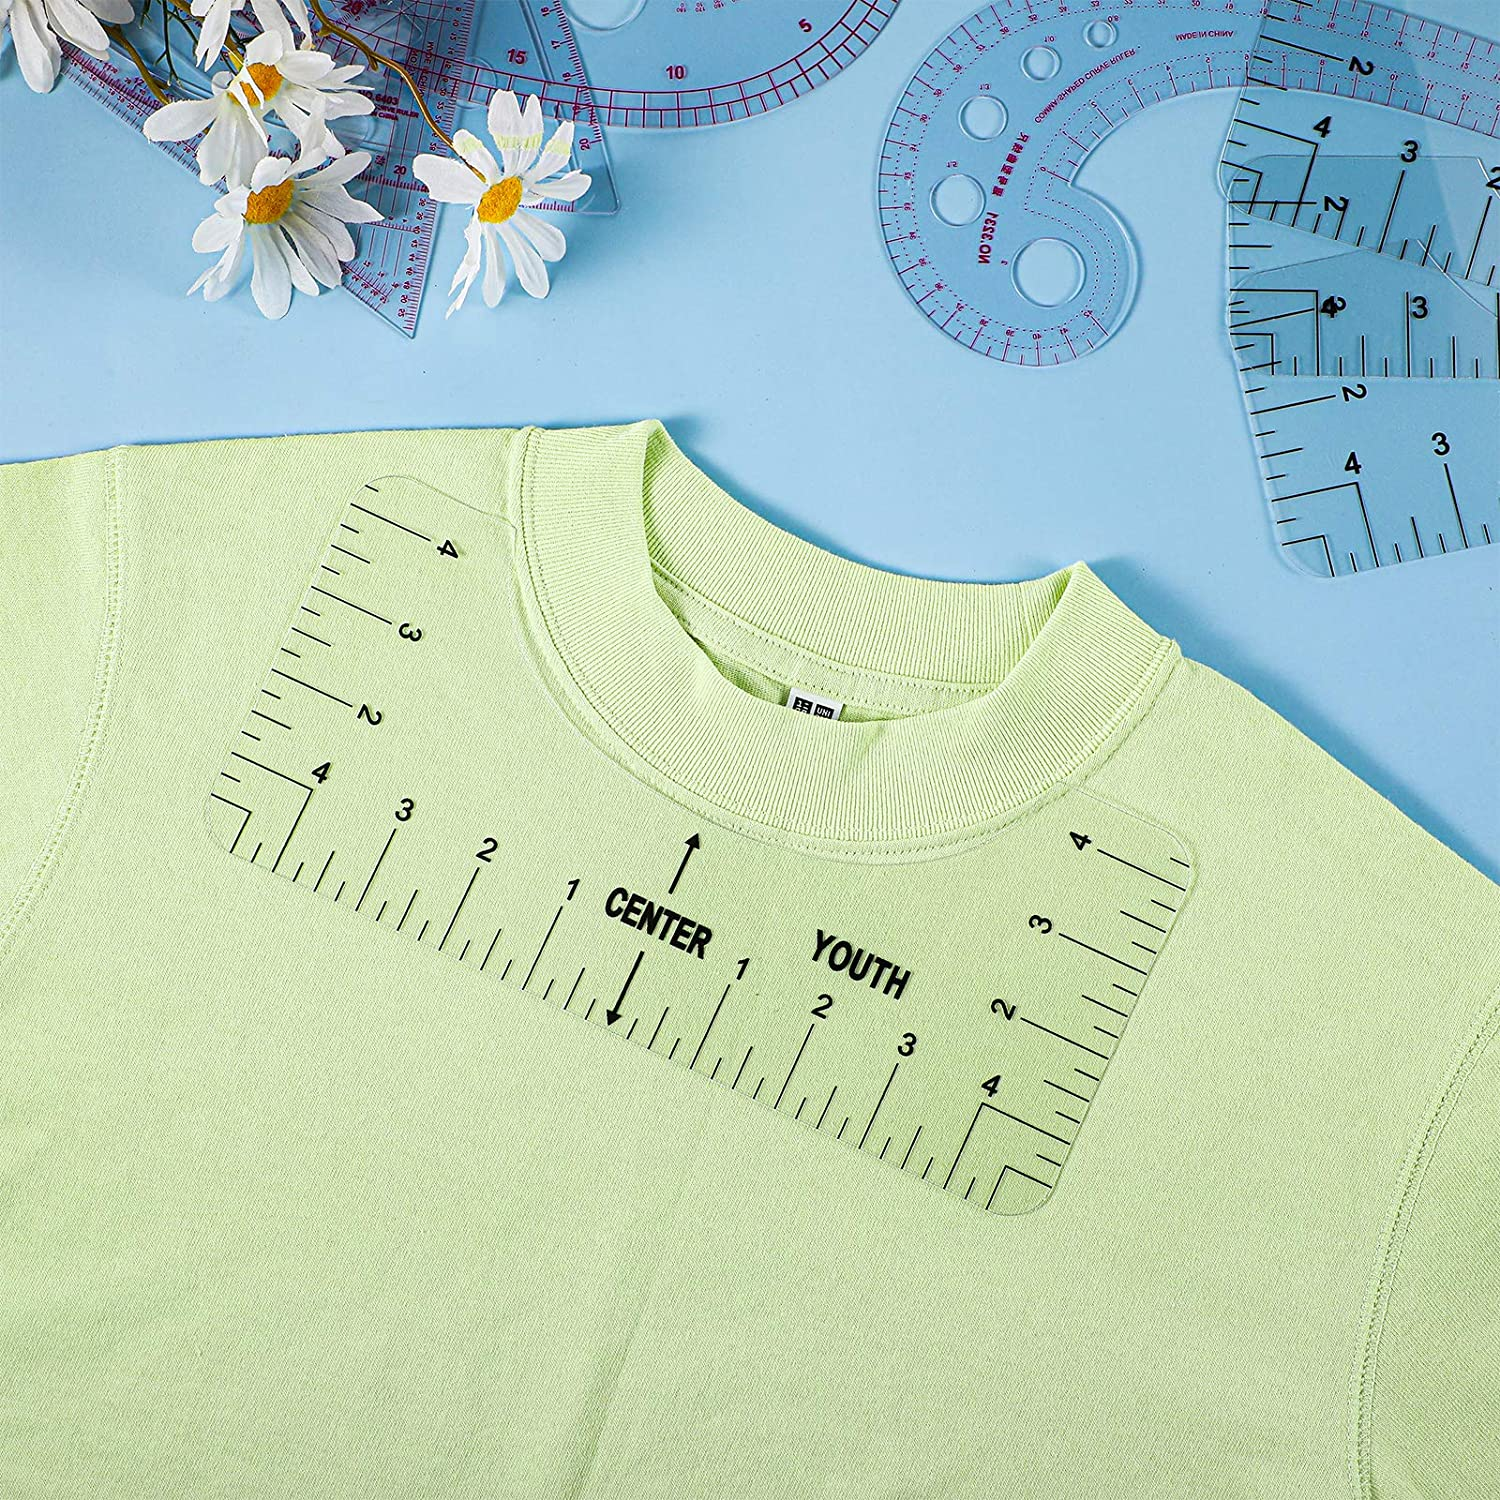 Craft Ruler with Guide Tool for Guiding T-Shirt Design 4 Pieces T-Shirt Alignment Rulers and 4 Pieces Sewing Ruler Tools Set Curve Shaped Measure Ruler for Sewing Dressmaking Tools